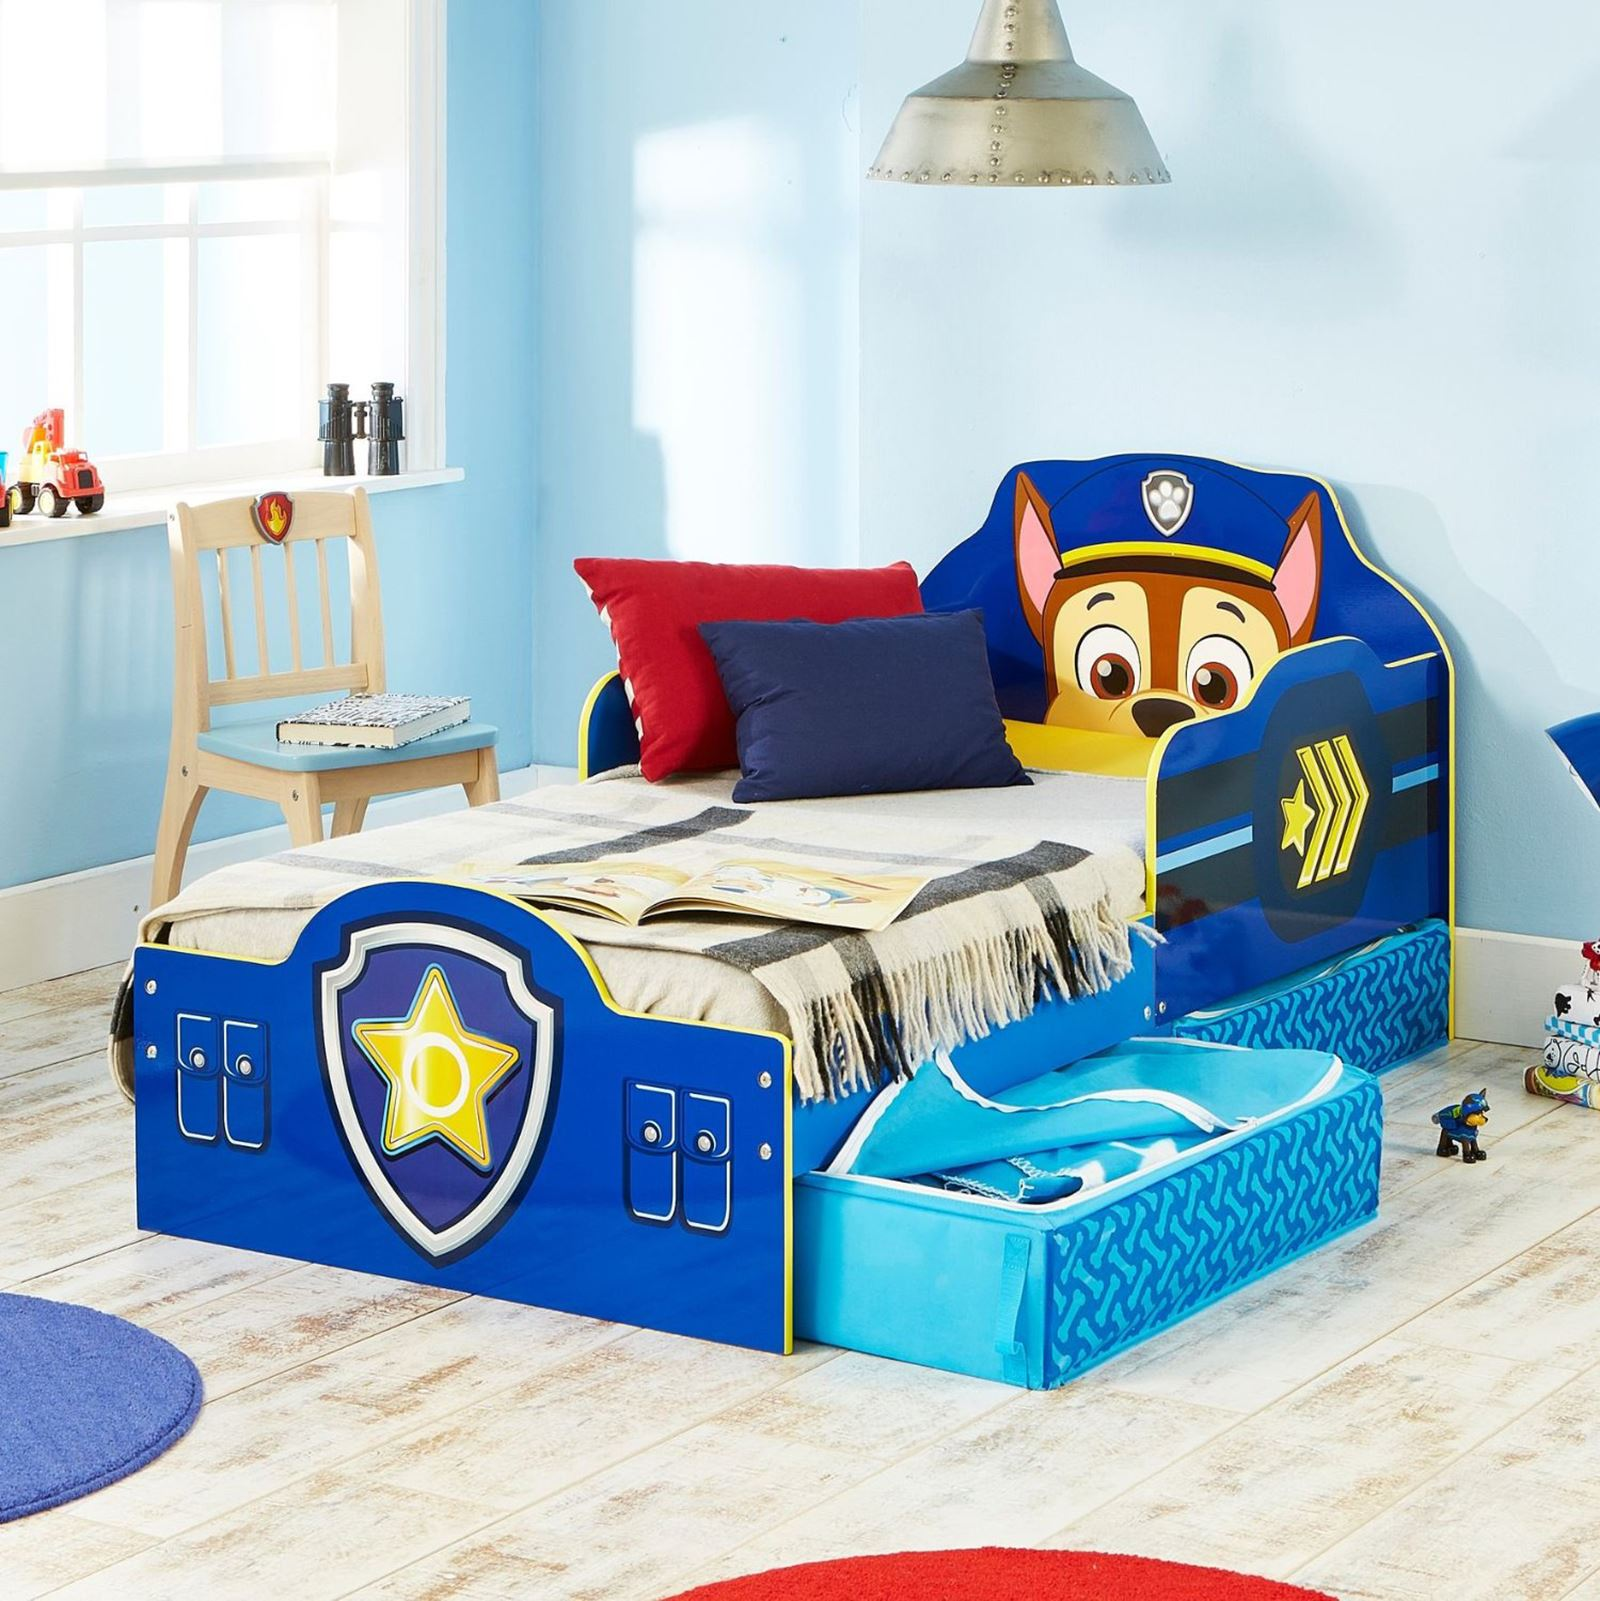 PAW PATROL CHASE TODDLER BED WITH STORAGE PLUS